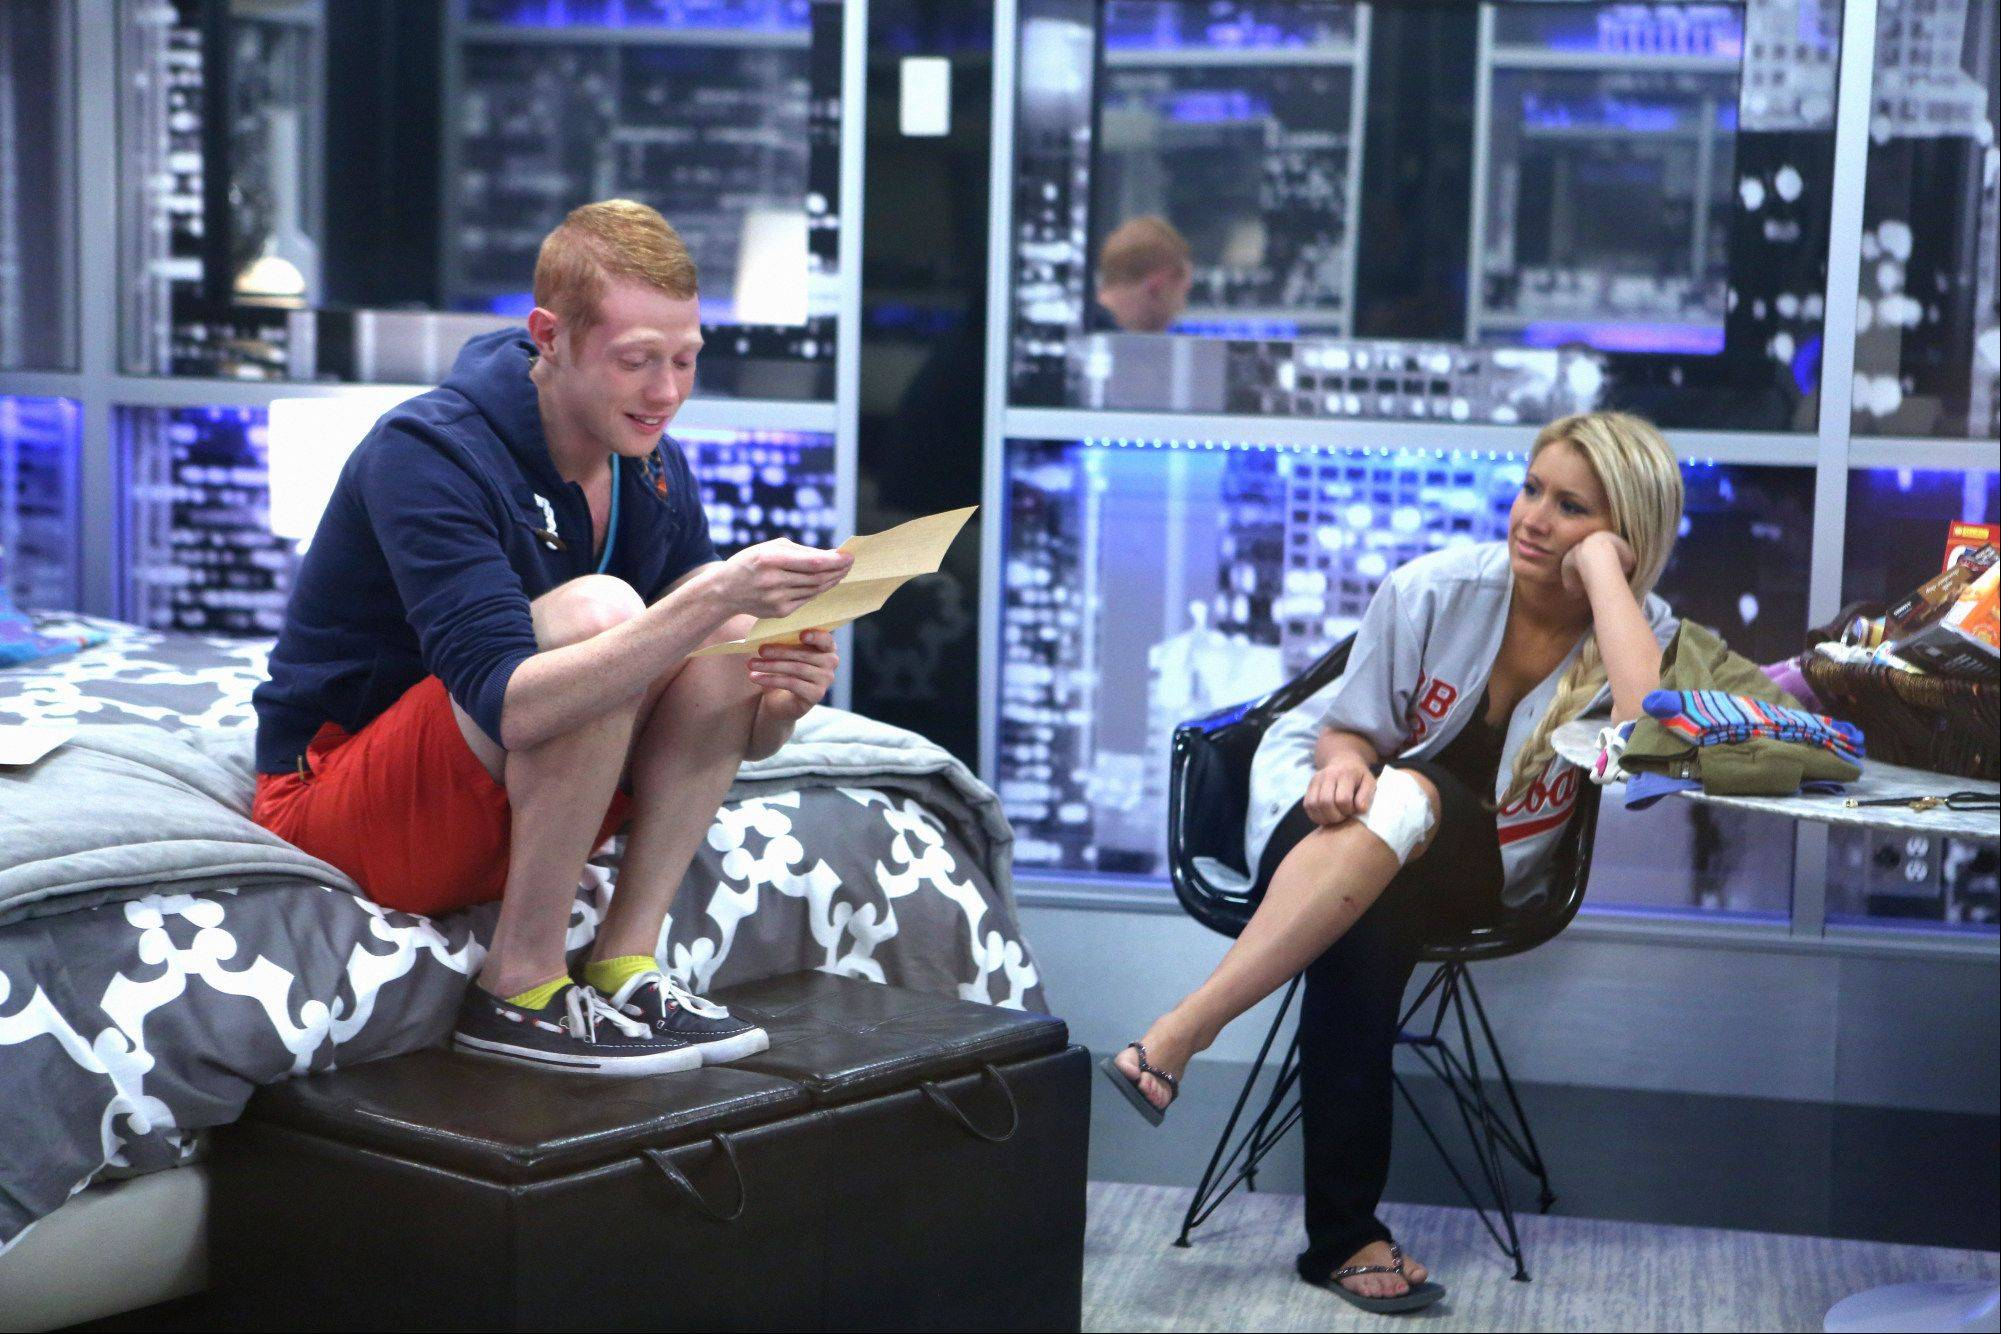 Houseguests, Spencer and Andy, on BIG BROTHER Wednesday, September 11.